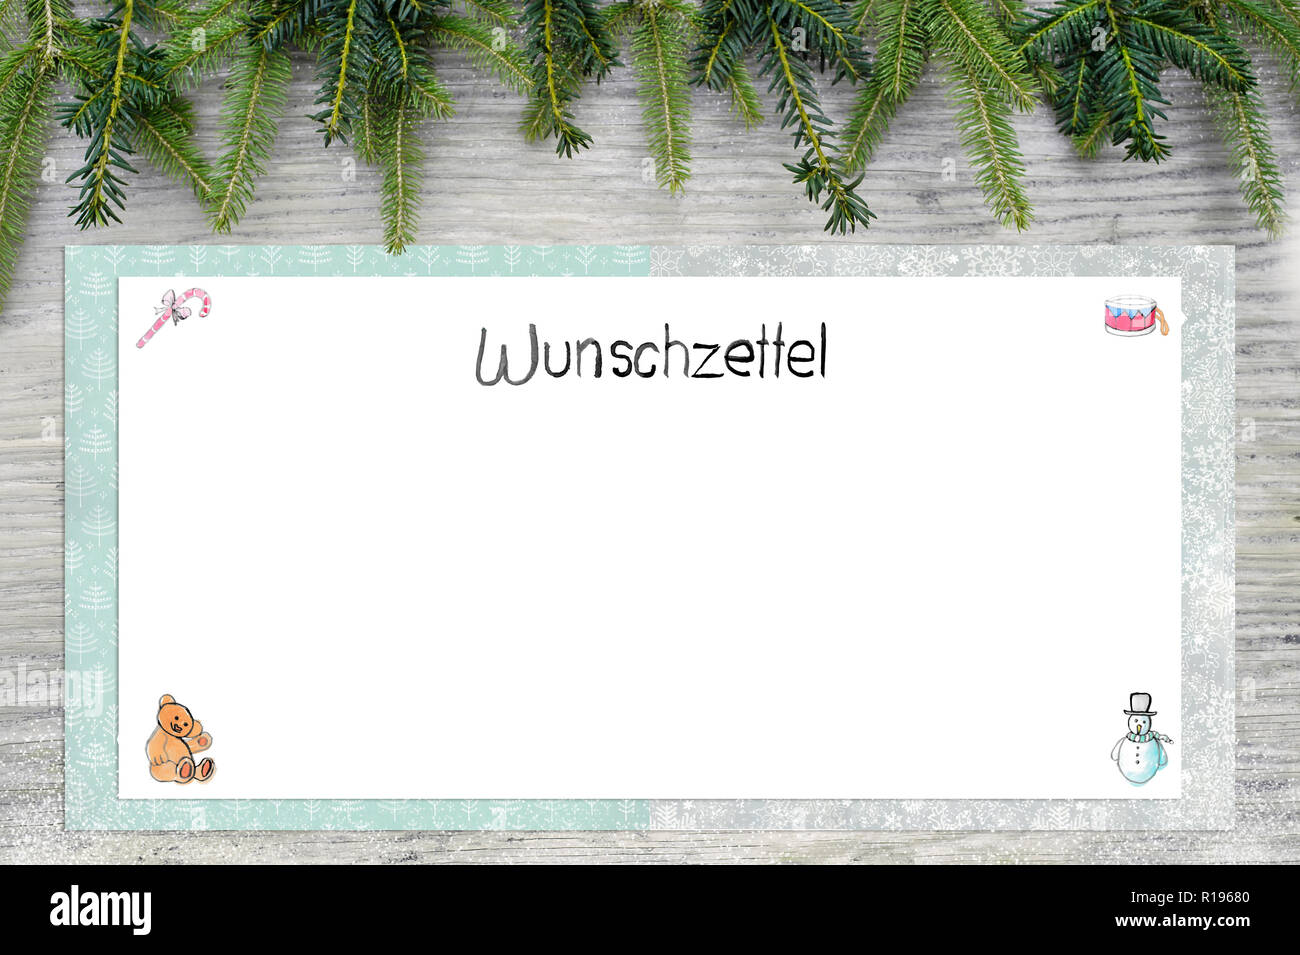 Christmas illustrations. English german text wish list as handlettering. In the background is wood and fir green. Stock Photo